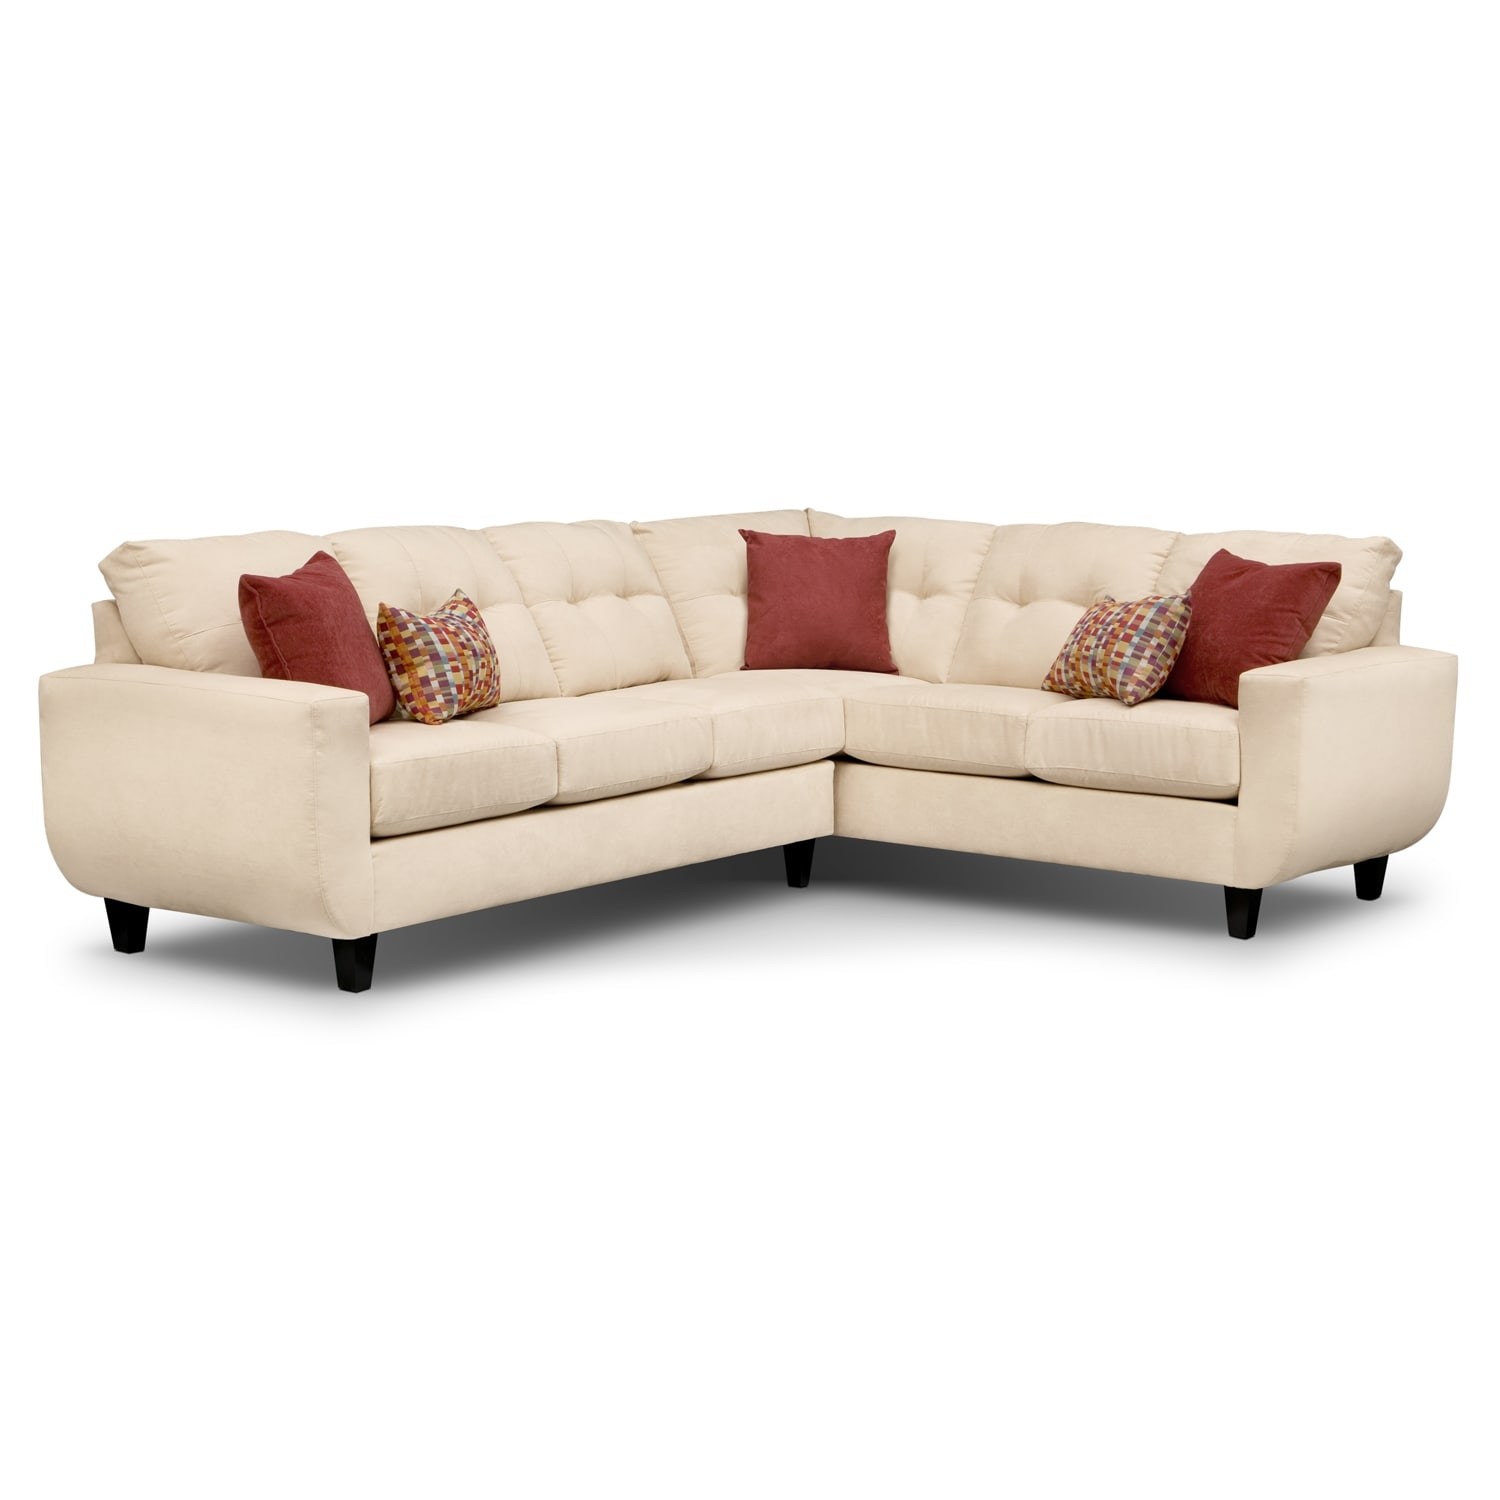 Living Room Furniture - West Village Cream II 2 Pc. Sectional